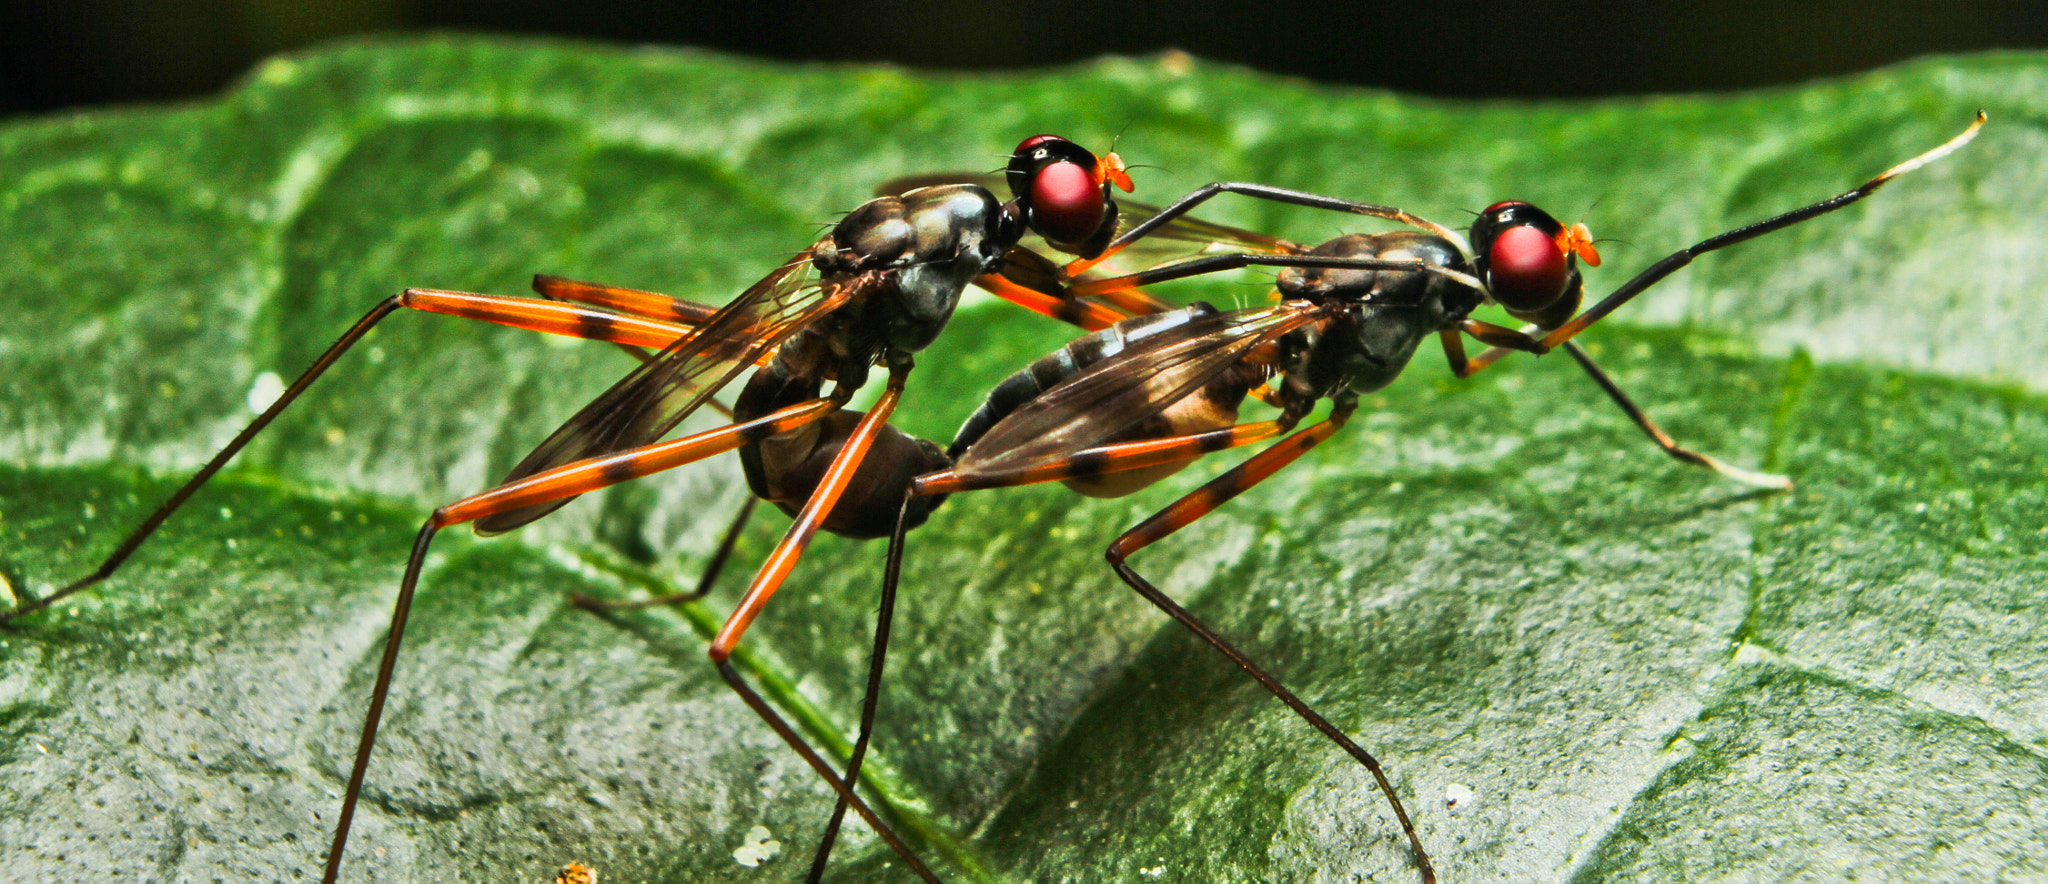 Photograph mating insect by rahmat Othman on 500px